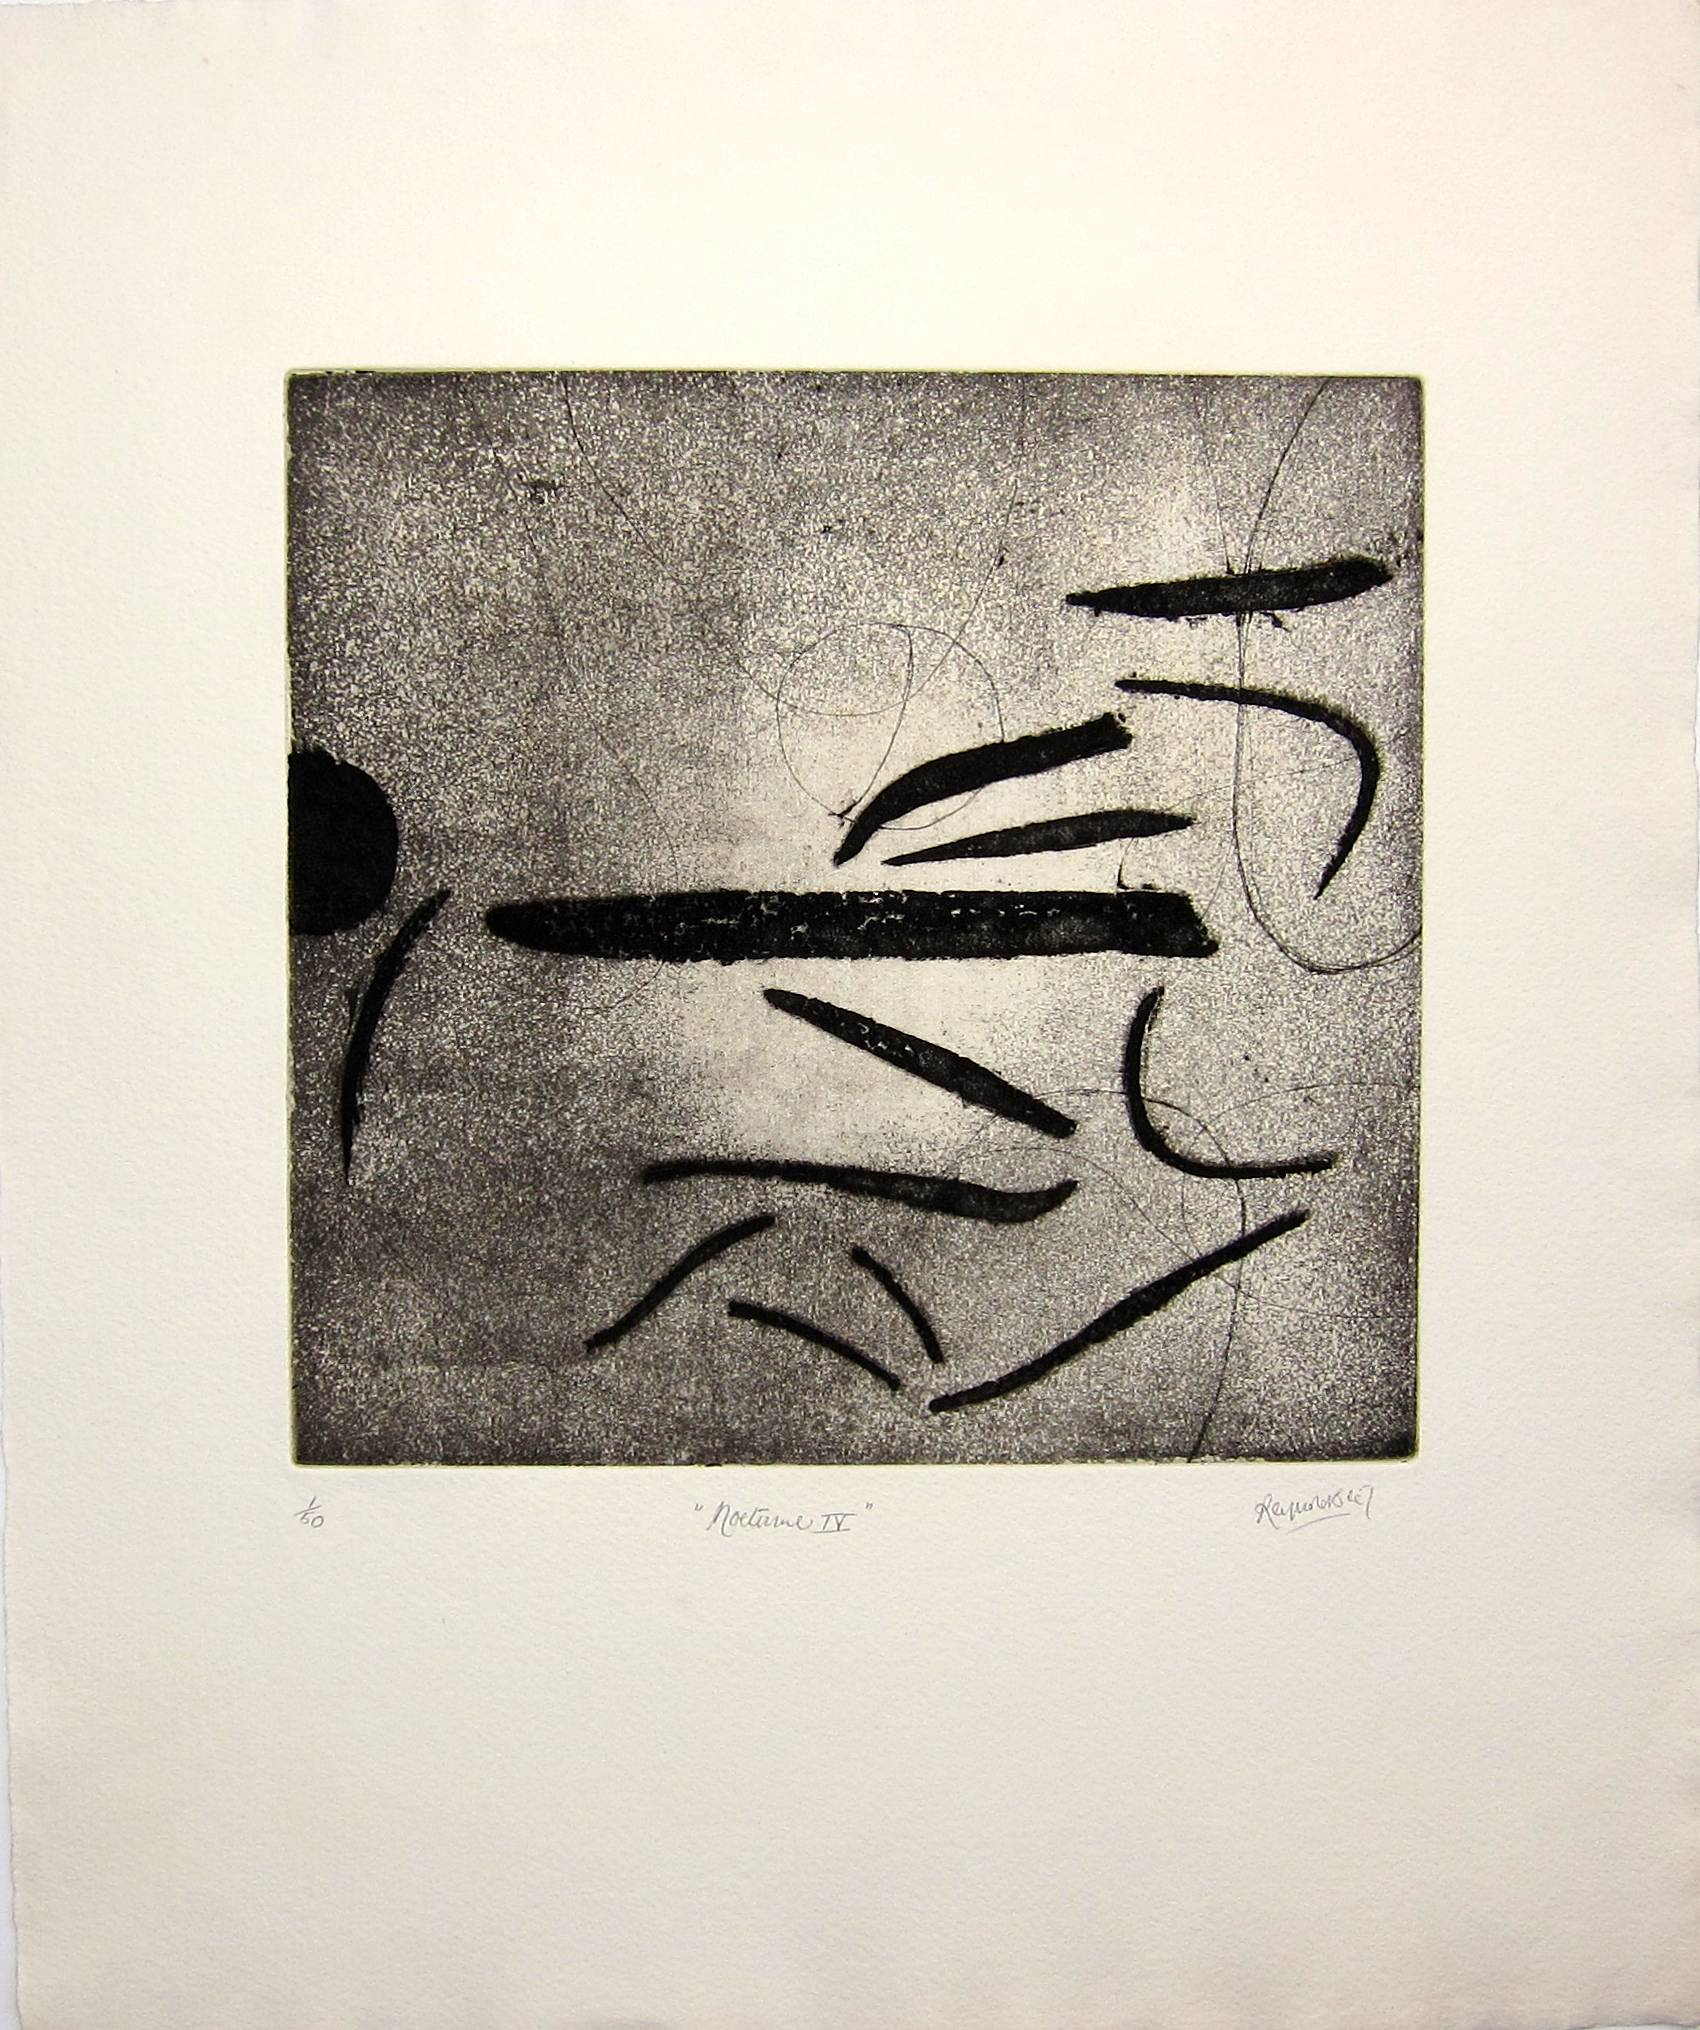 Lot 17 - ALAN REYNOLDS, R.A. [1926-2014]. Nocturne !V, 1967, etching 1/50, the first of this edition -